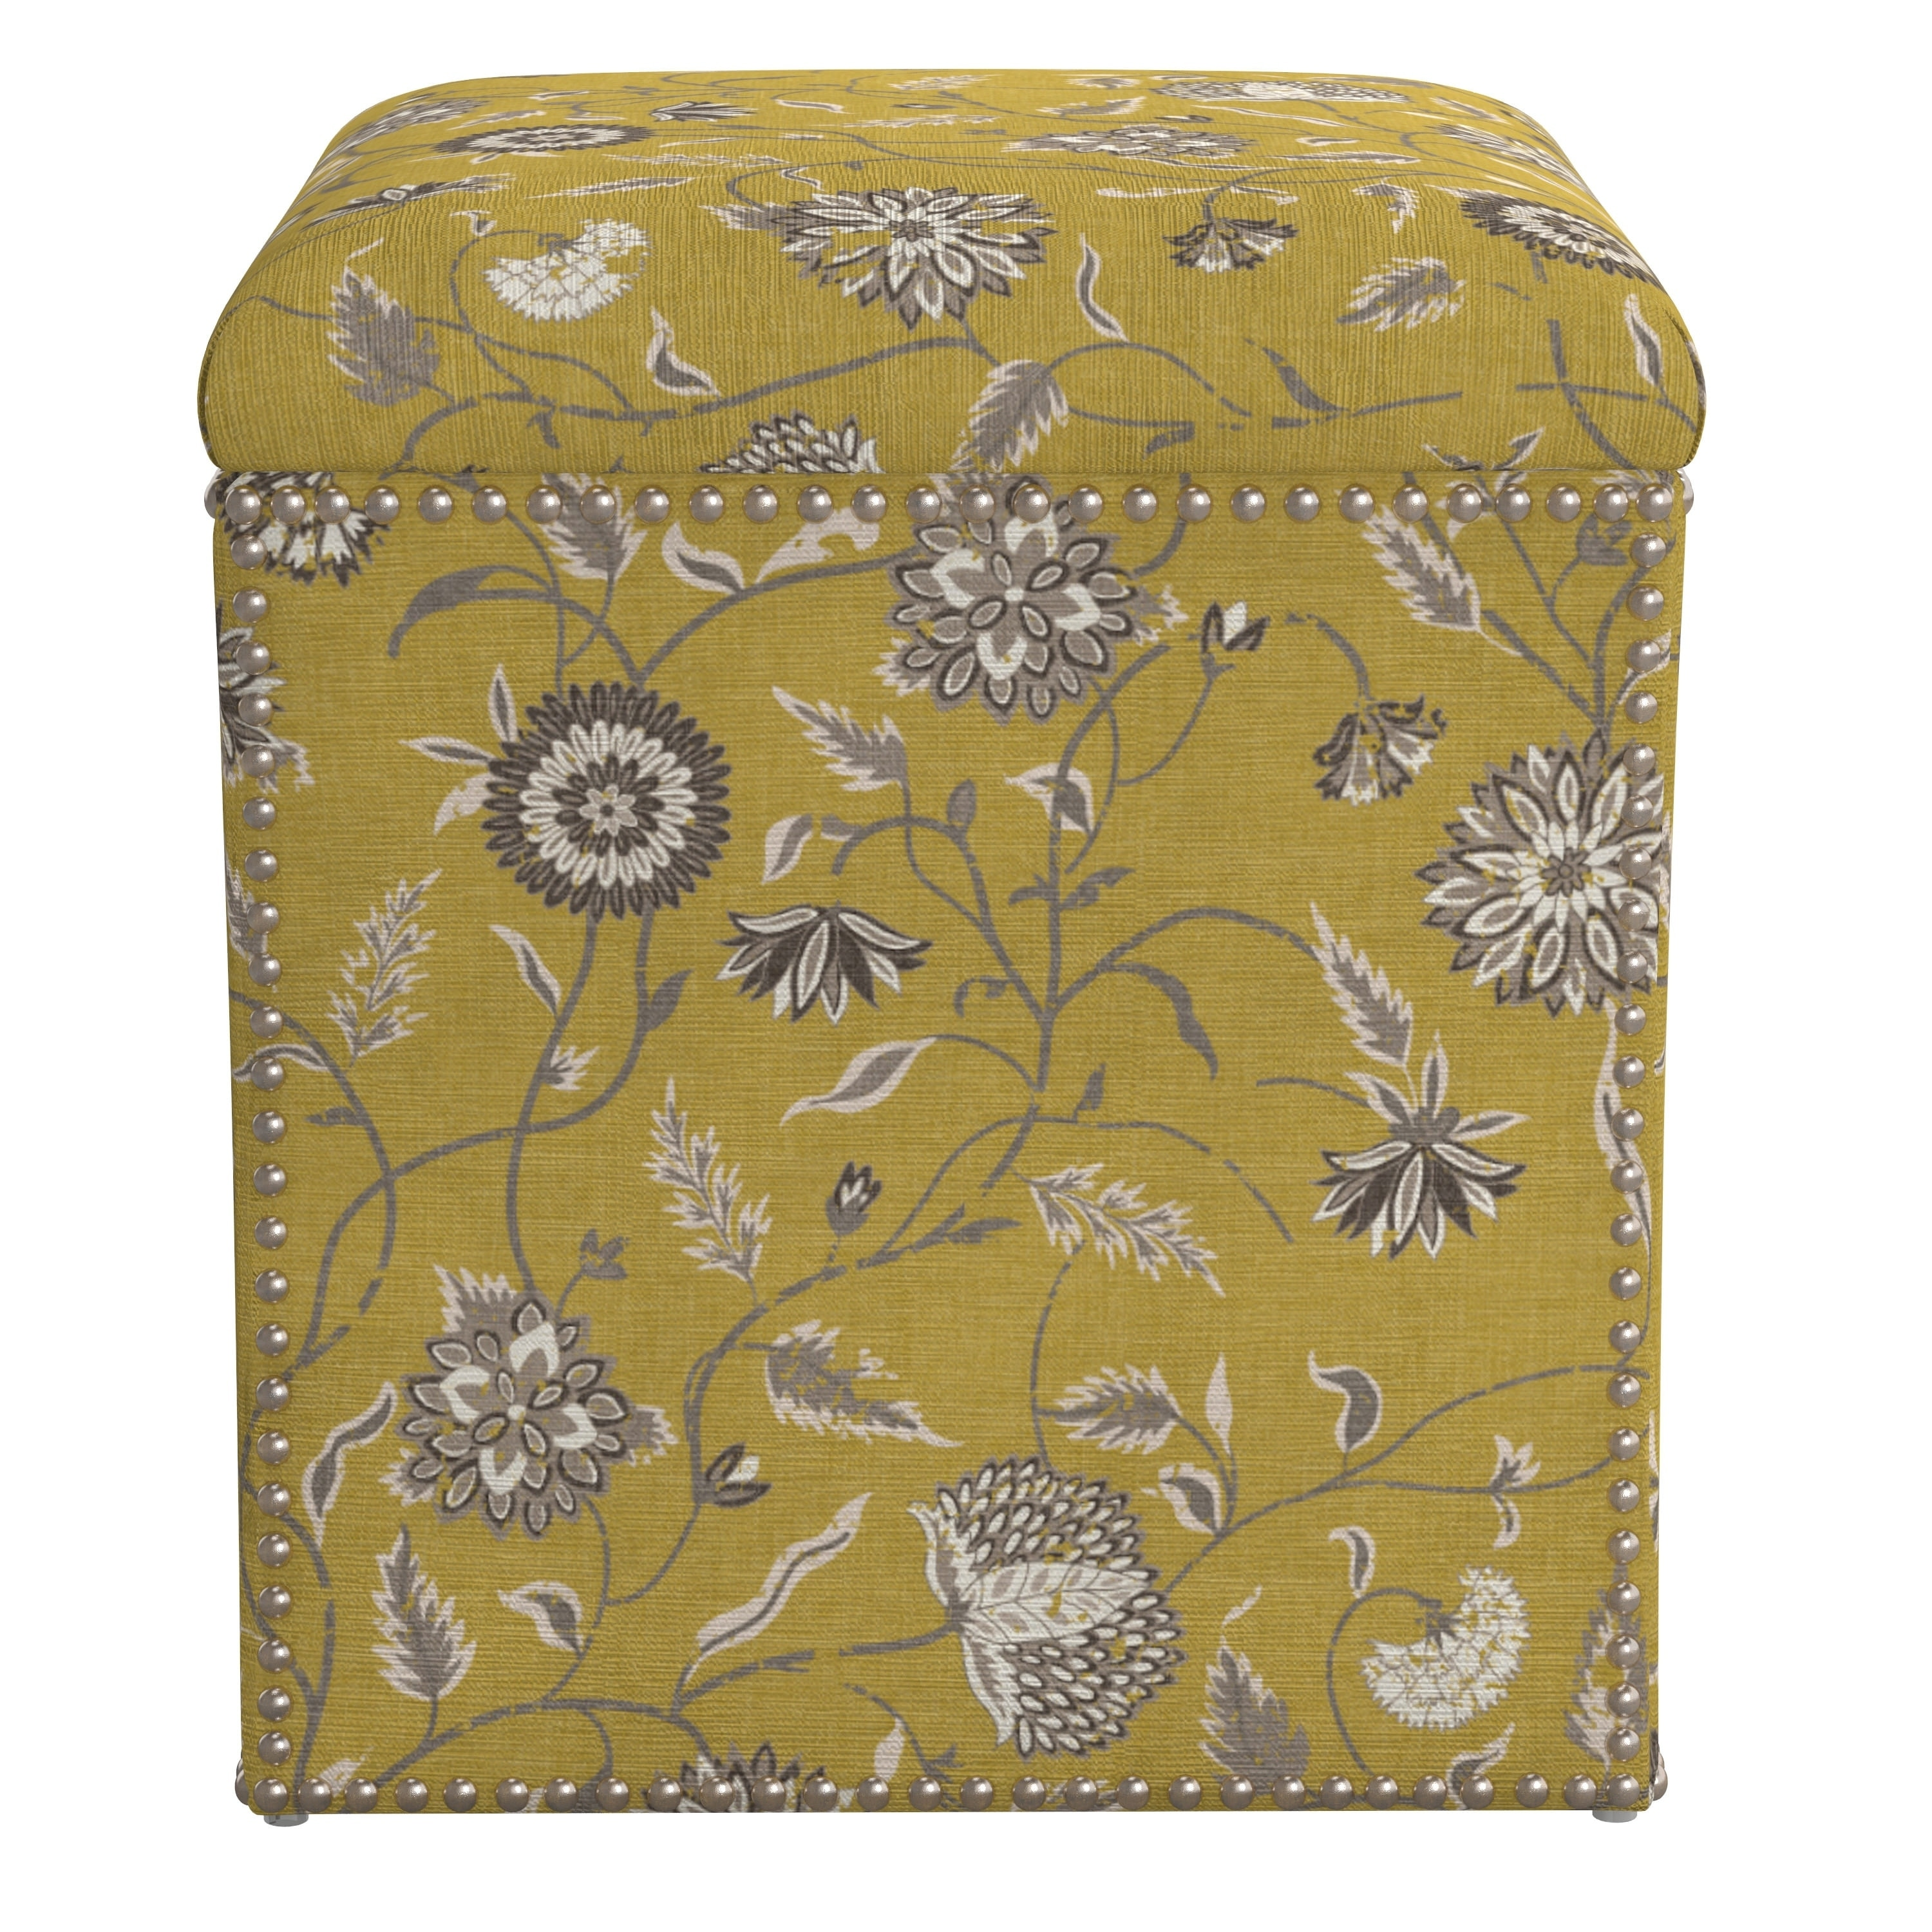 Skyline Furniture Custom Storage Ottoman in Prints - Free Shipping Today - Overstock.com - 23421820  sc 1 st  Overstock.com & Skyline Furniture Custom Storage Ottoman in Prints - Free Shipping ...